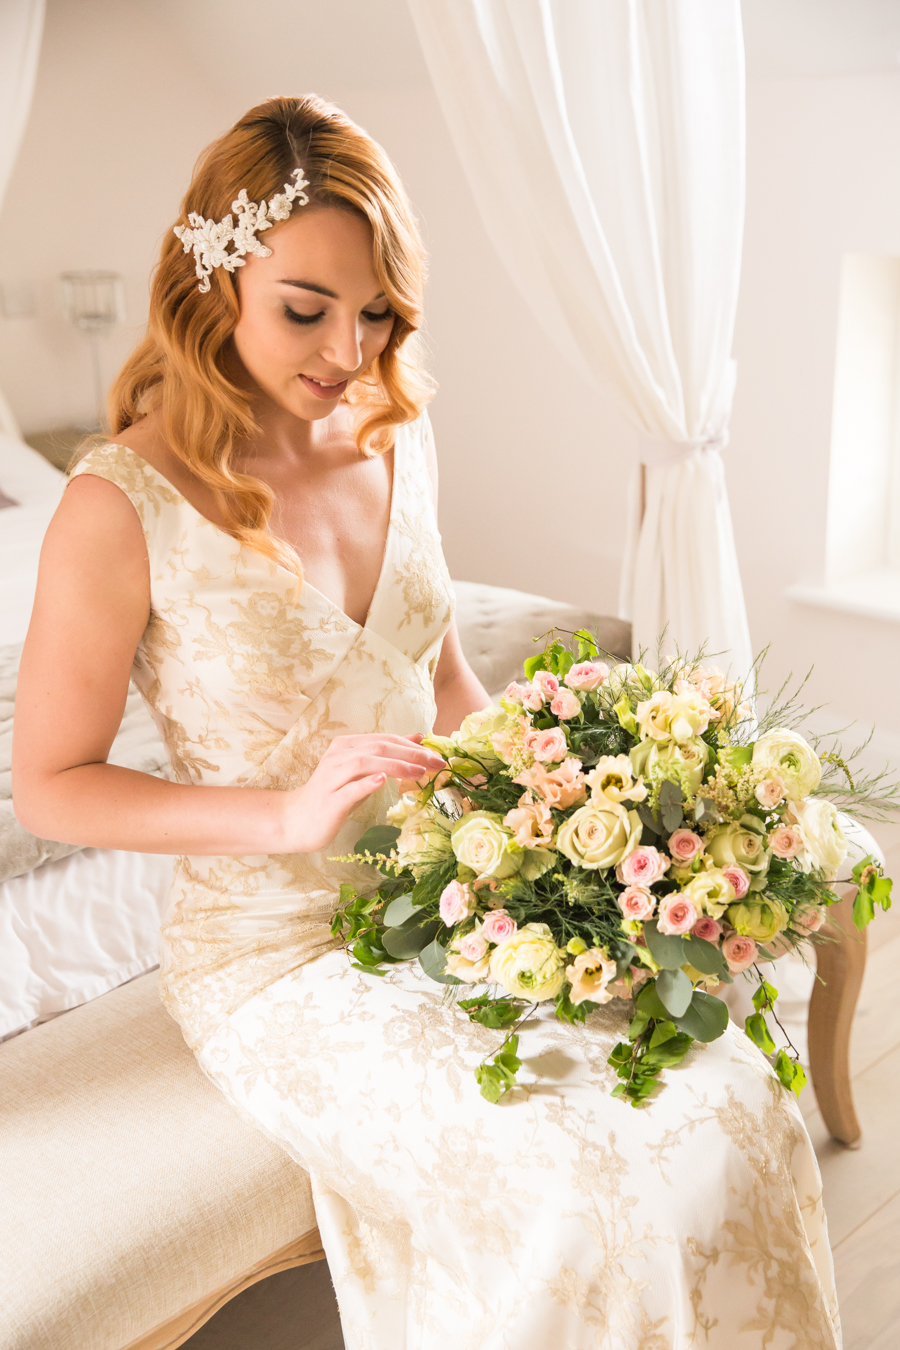 English country garden wedding style ideas with Hannah Larkin Photography (12)